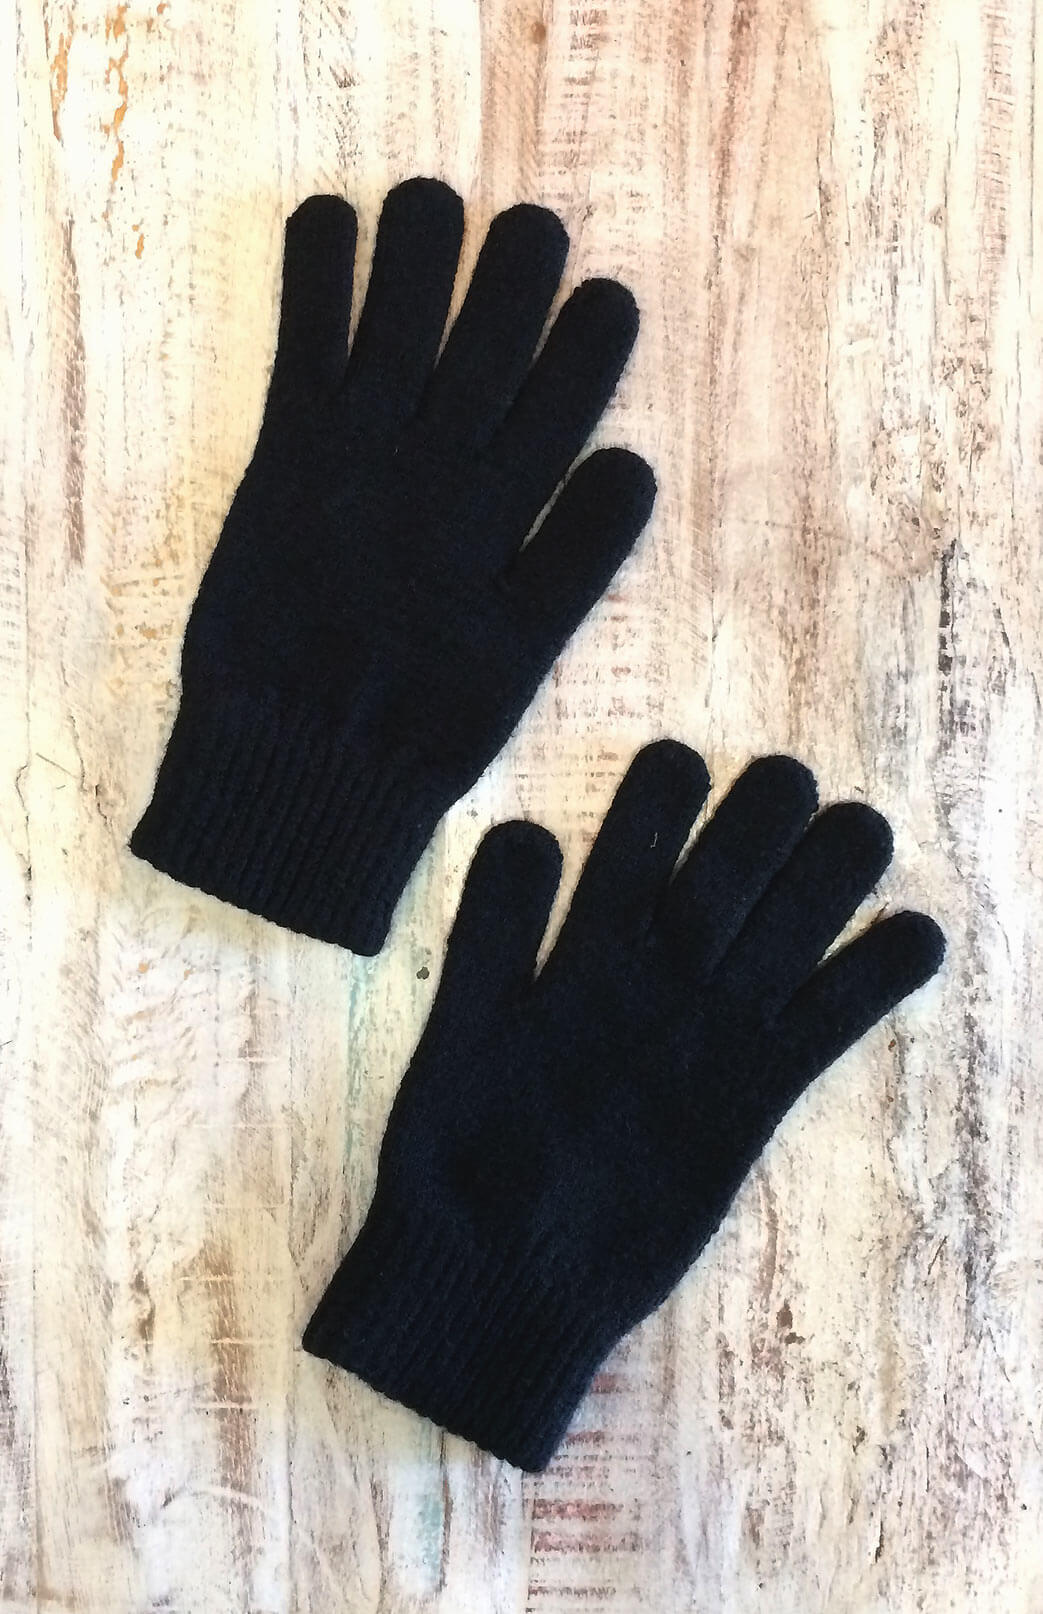 Merino Wool Gloves - Merino Wool Thermal Full Finger Gloves - Smitten Merino Tasmania Australia